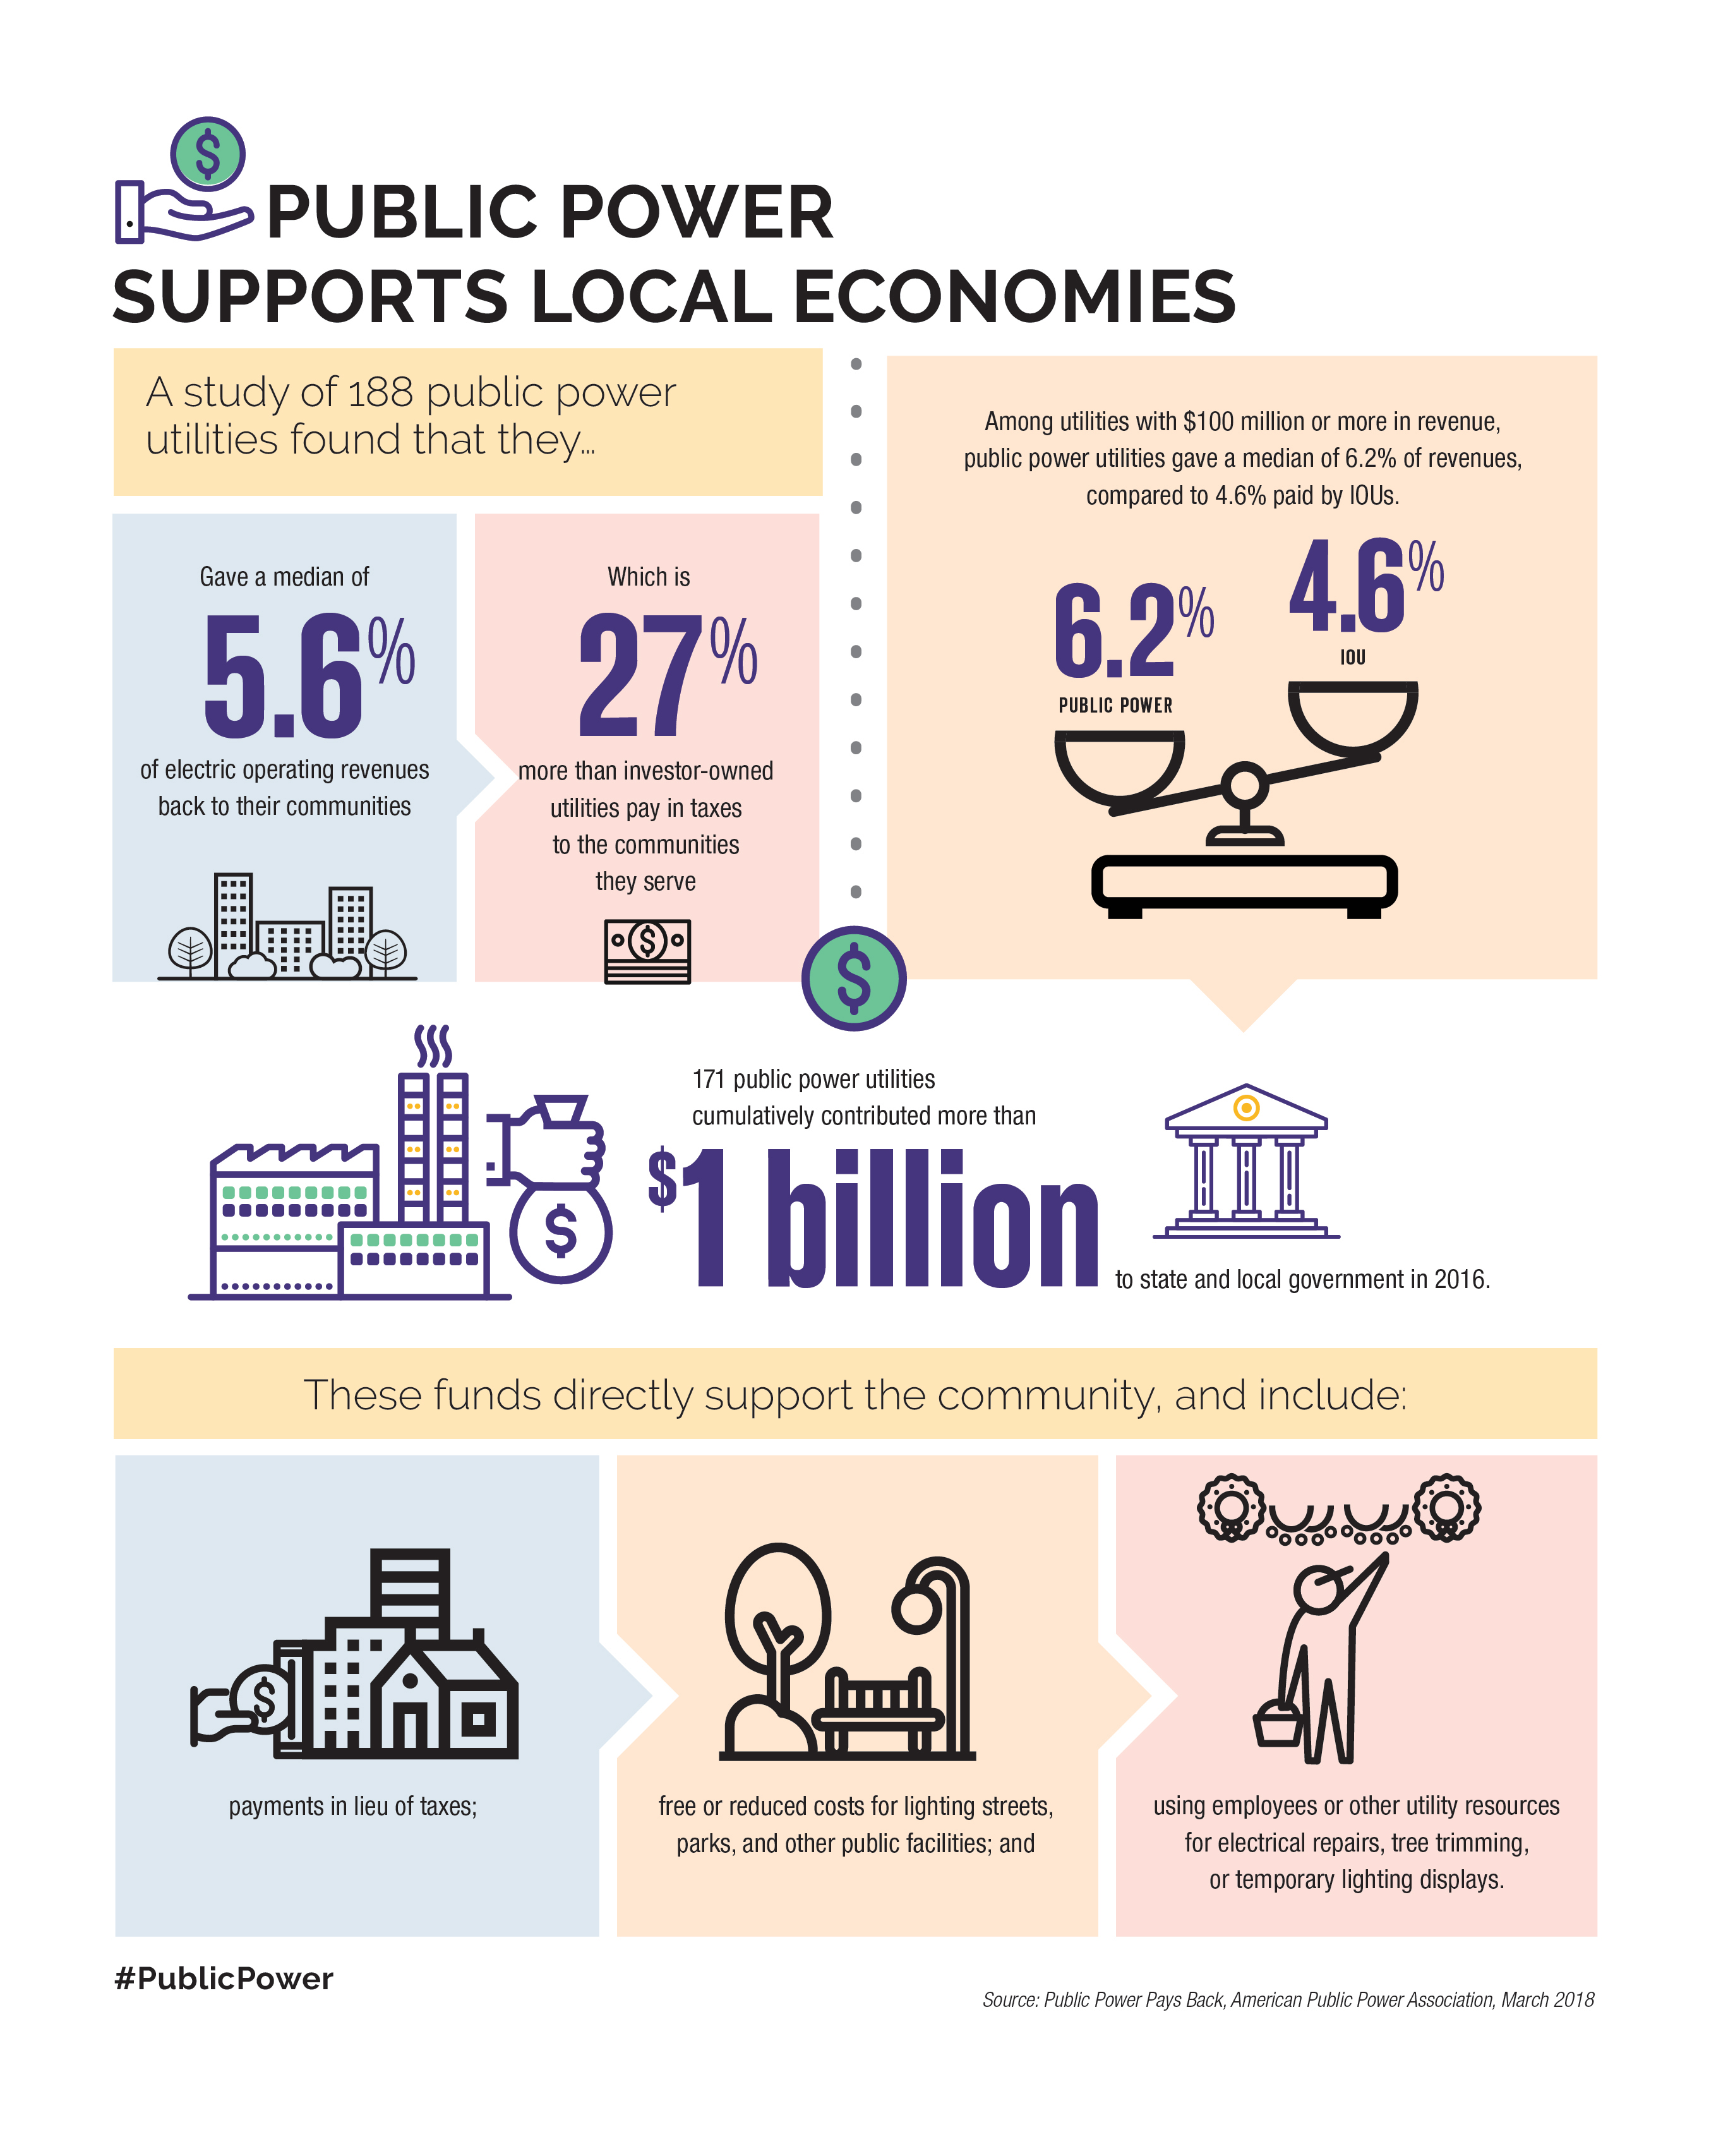 Infographic on how public power utilities support economic growth